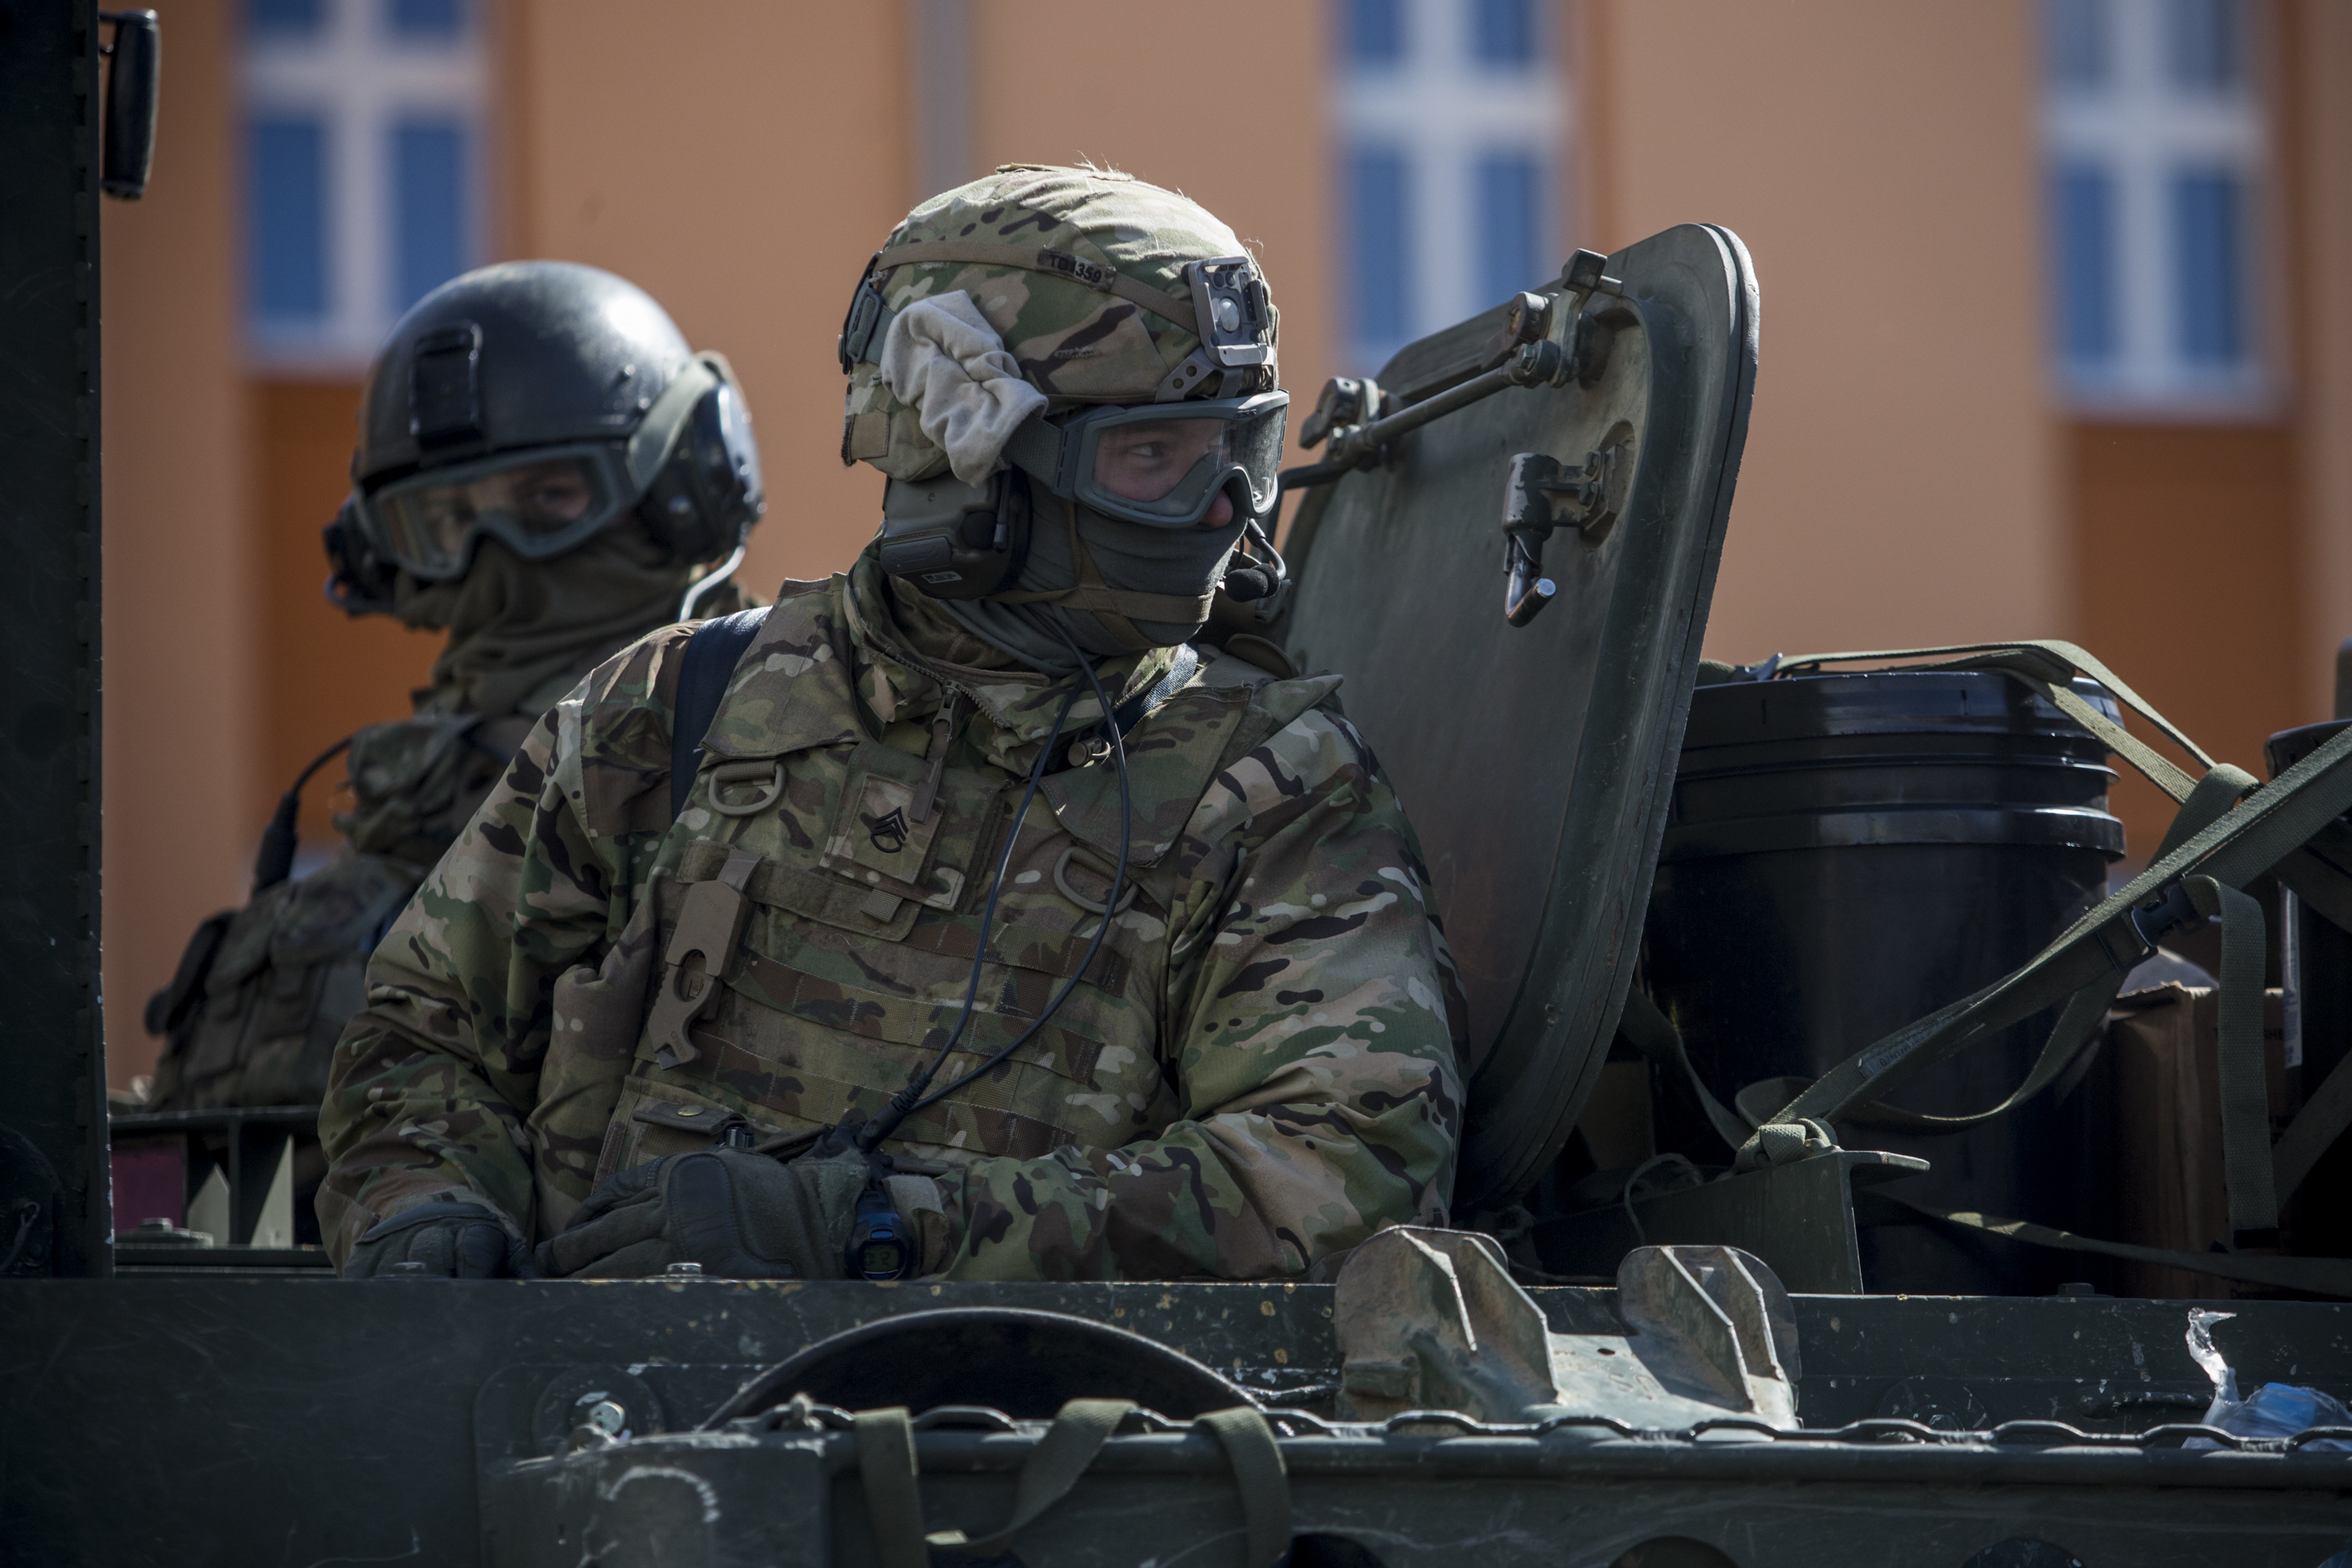 U.S. Army soldiers of the 3rd Squadron, 2nd Cavalry Regiment arrive at Czech army barracks on March 30, 2015, in Prague